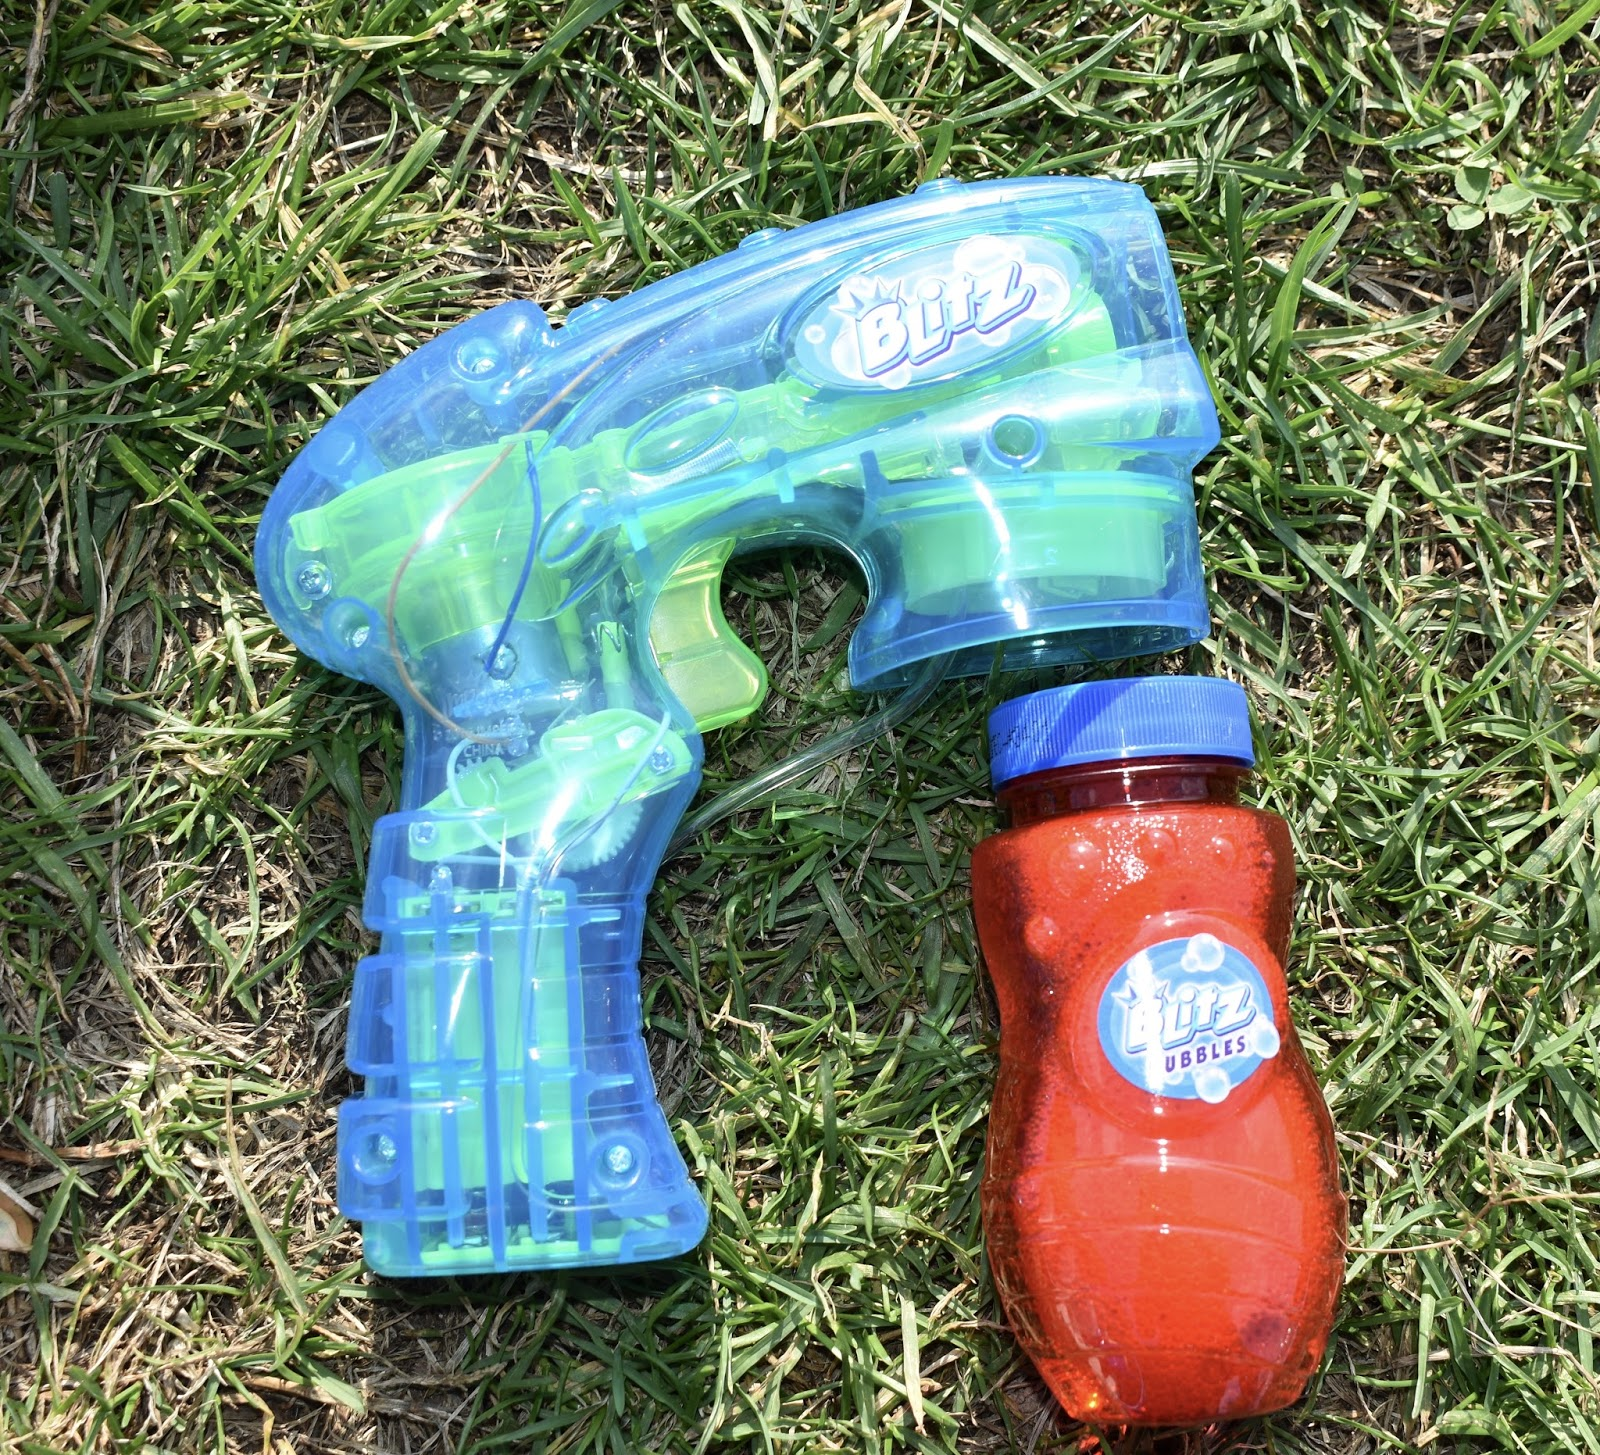 Day To Day Moments Kaos Pump Station Bubble Blitz Blaster